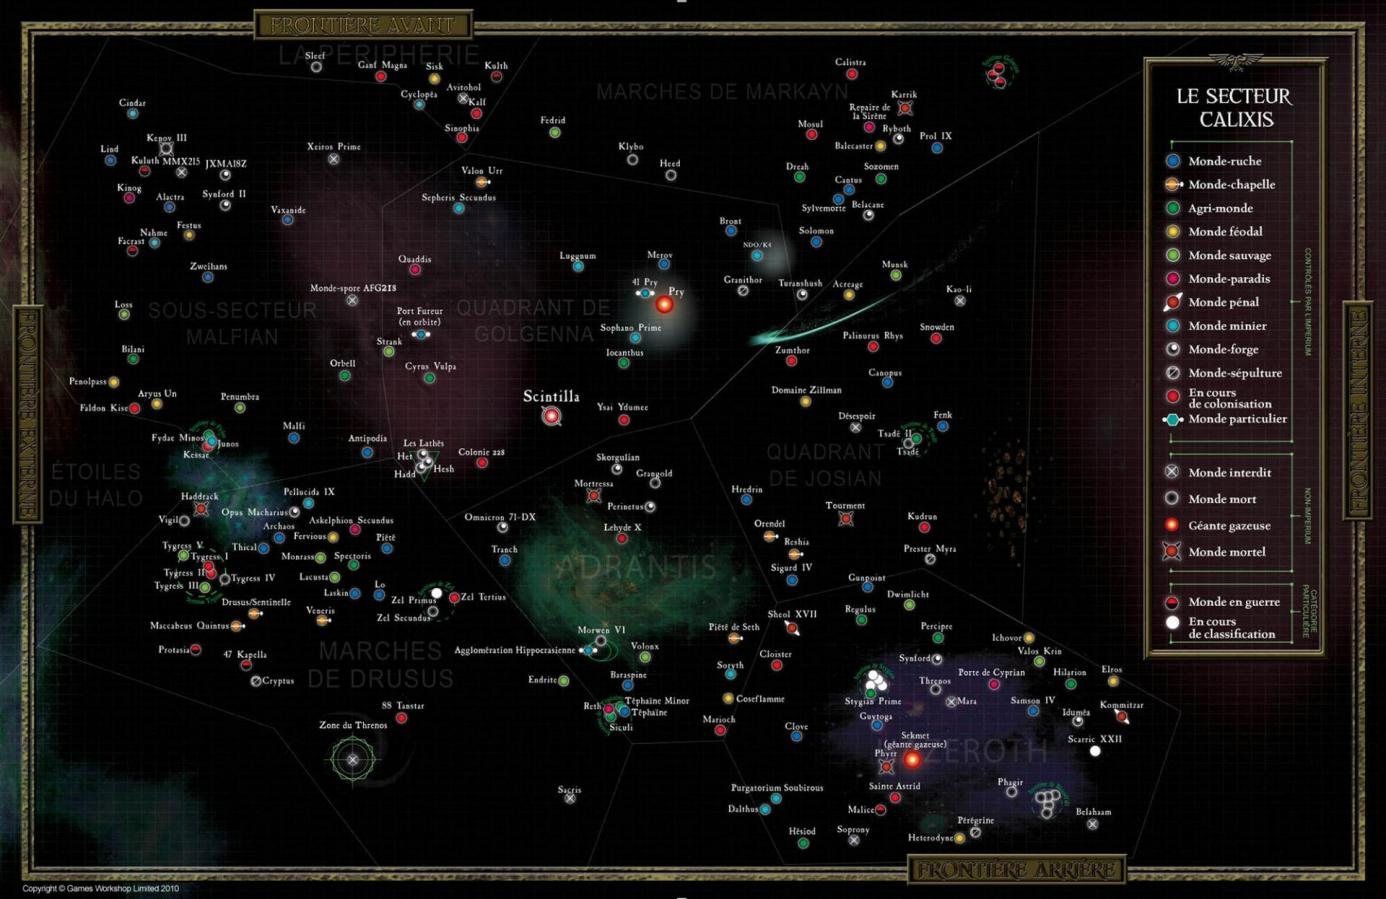 Galaxis calixis map